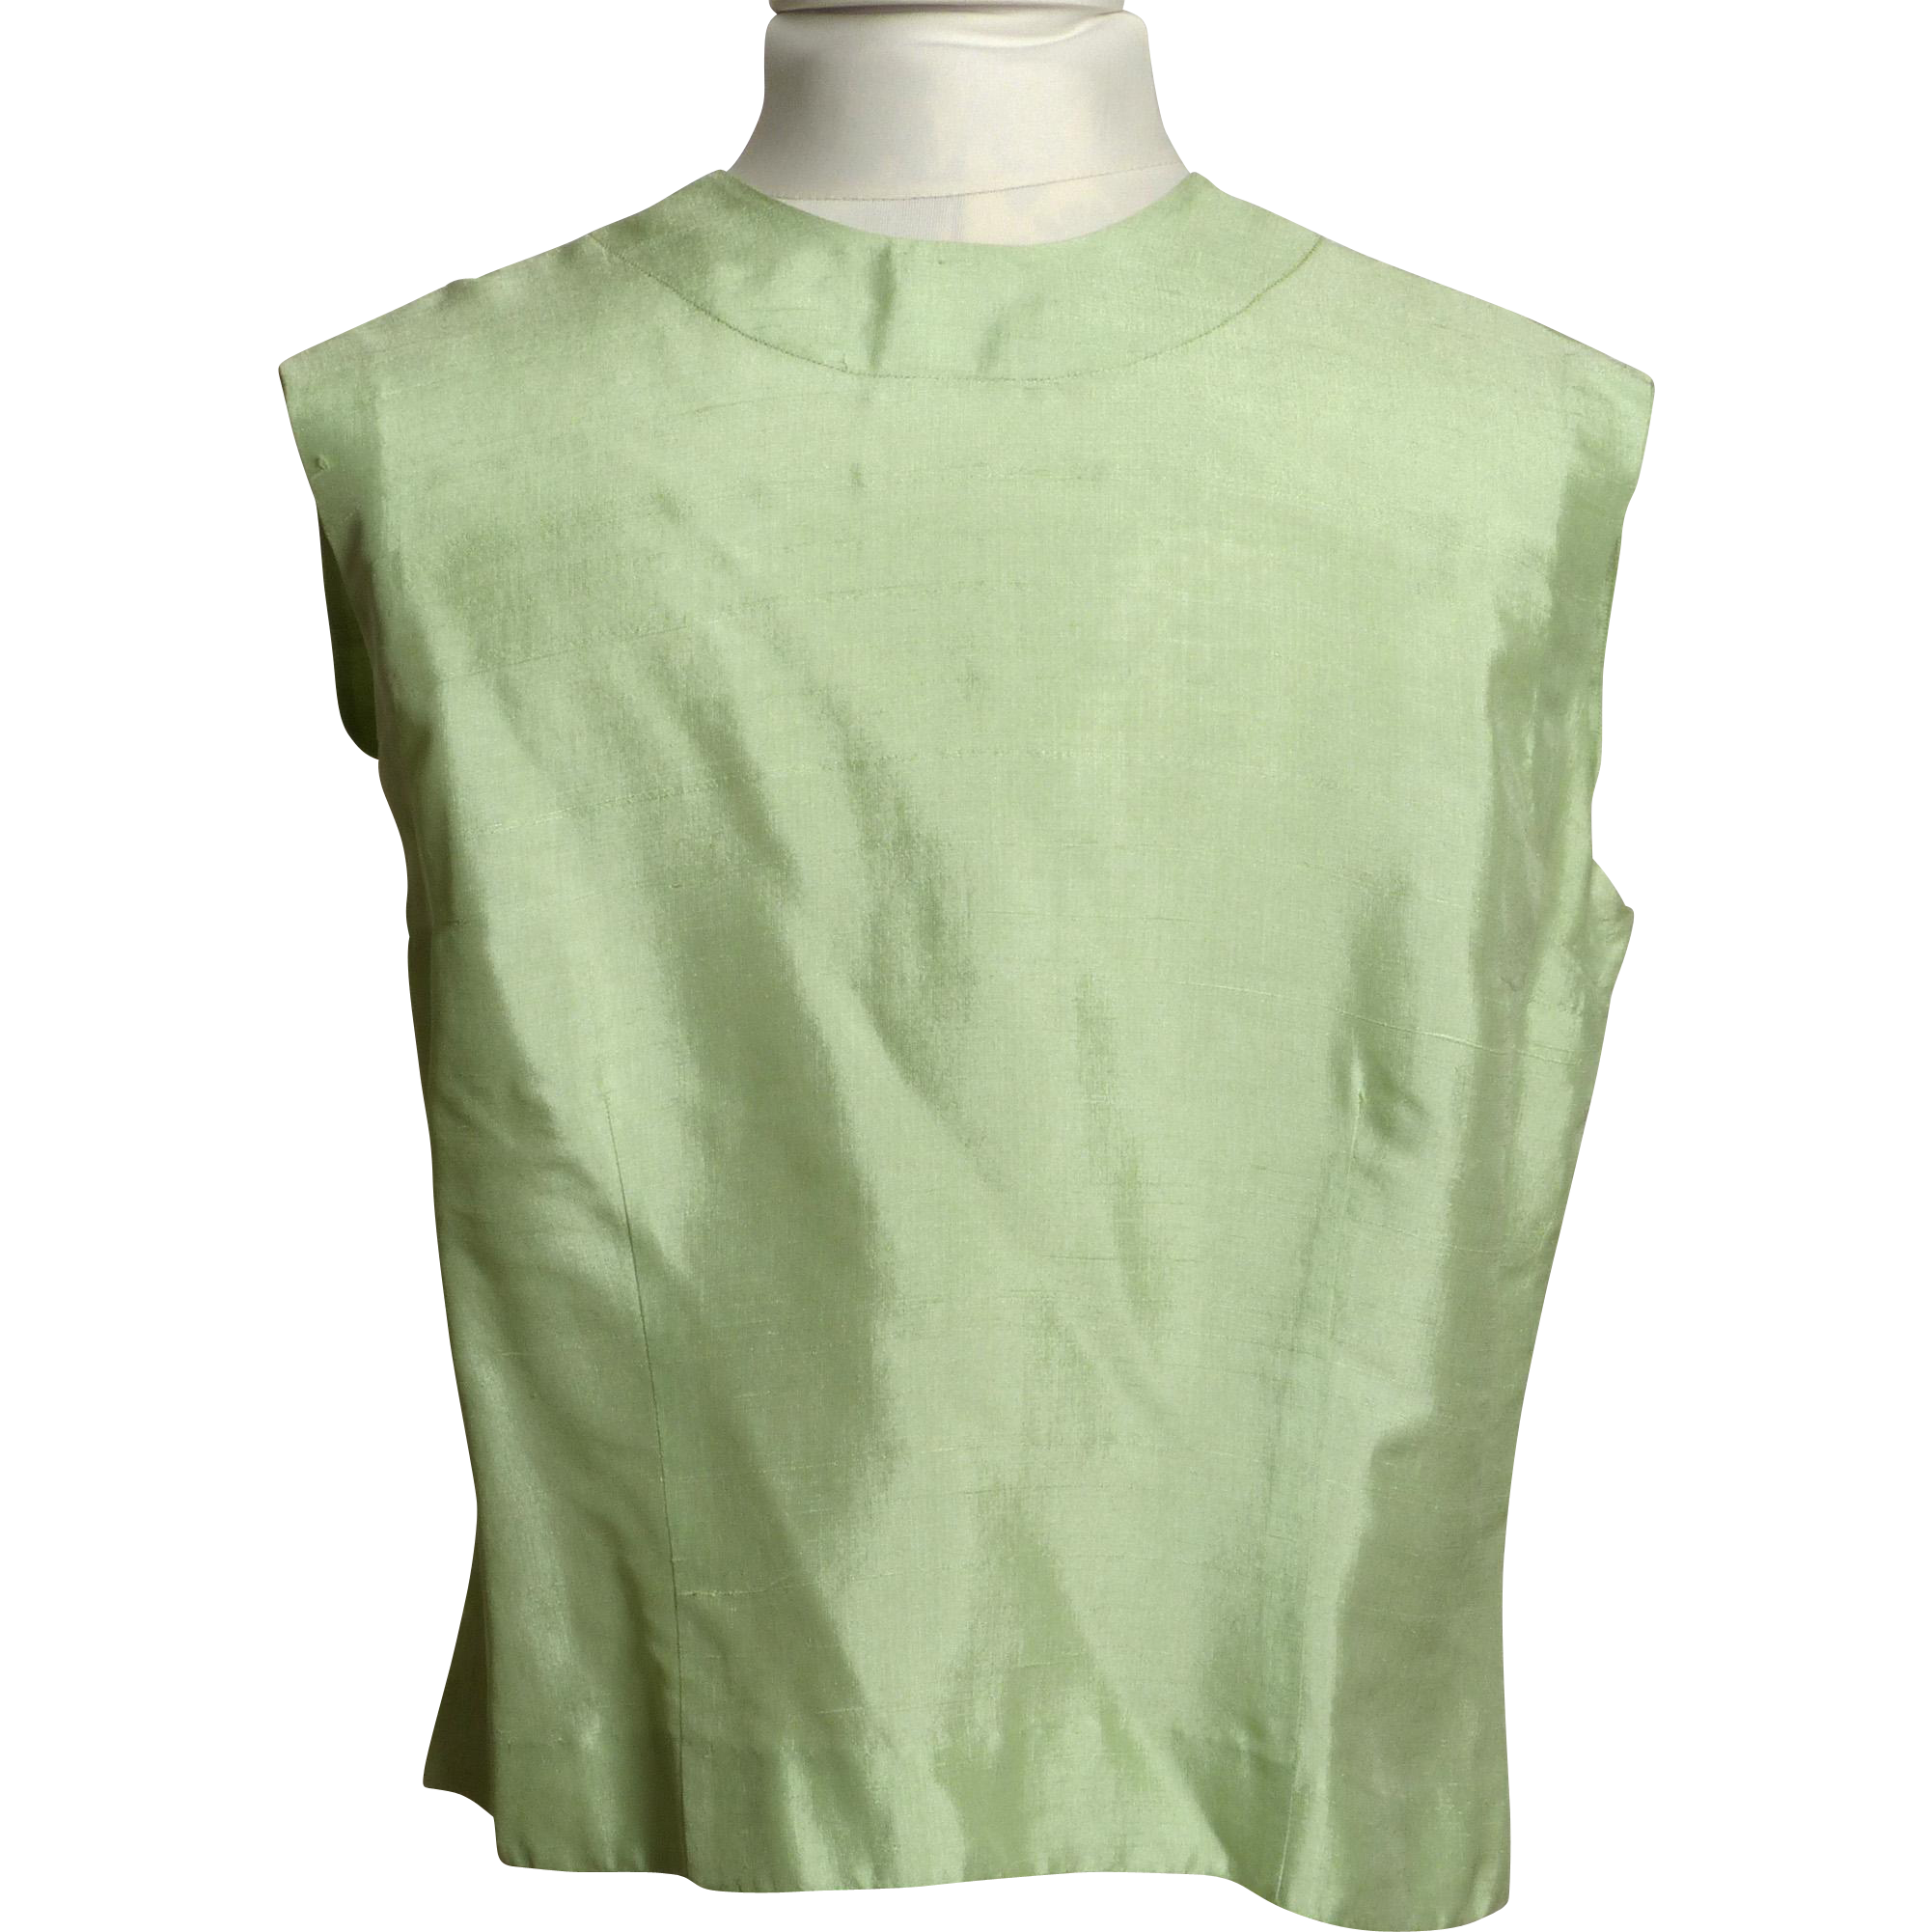 Circa 1940s Bonwit Teller Mint Green Silk Blouse with Button Back